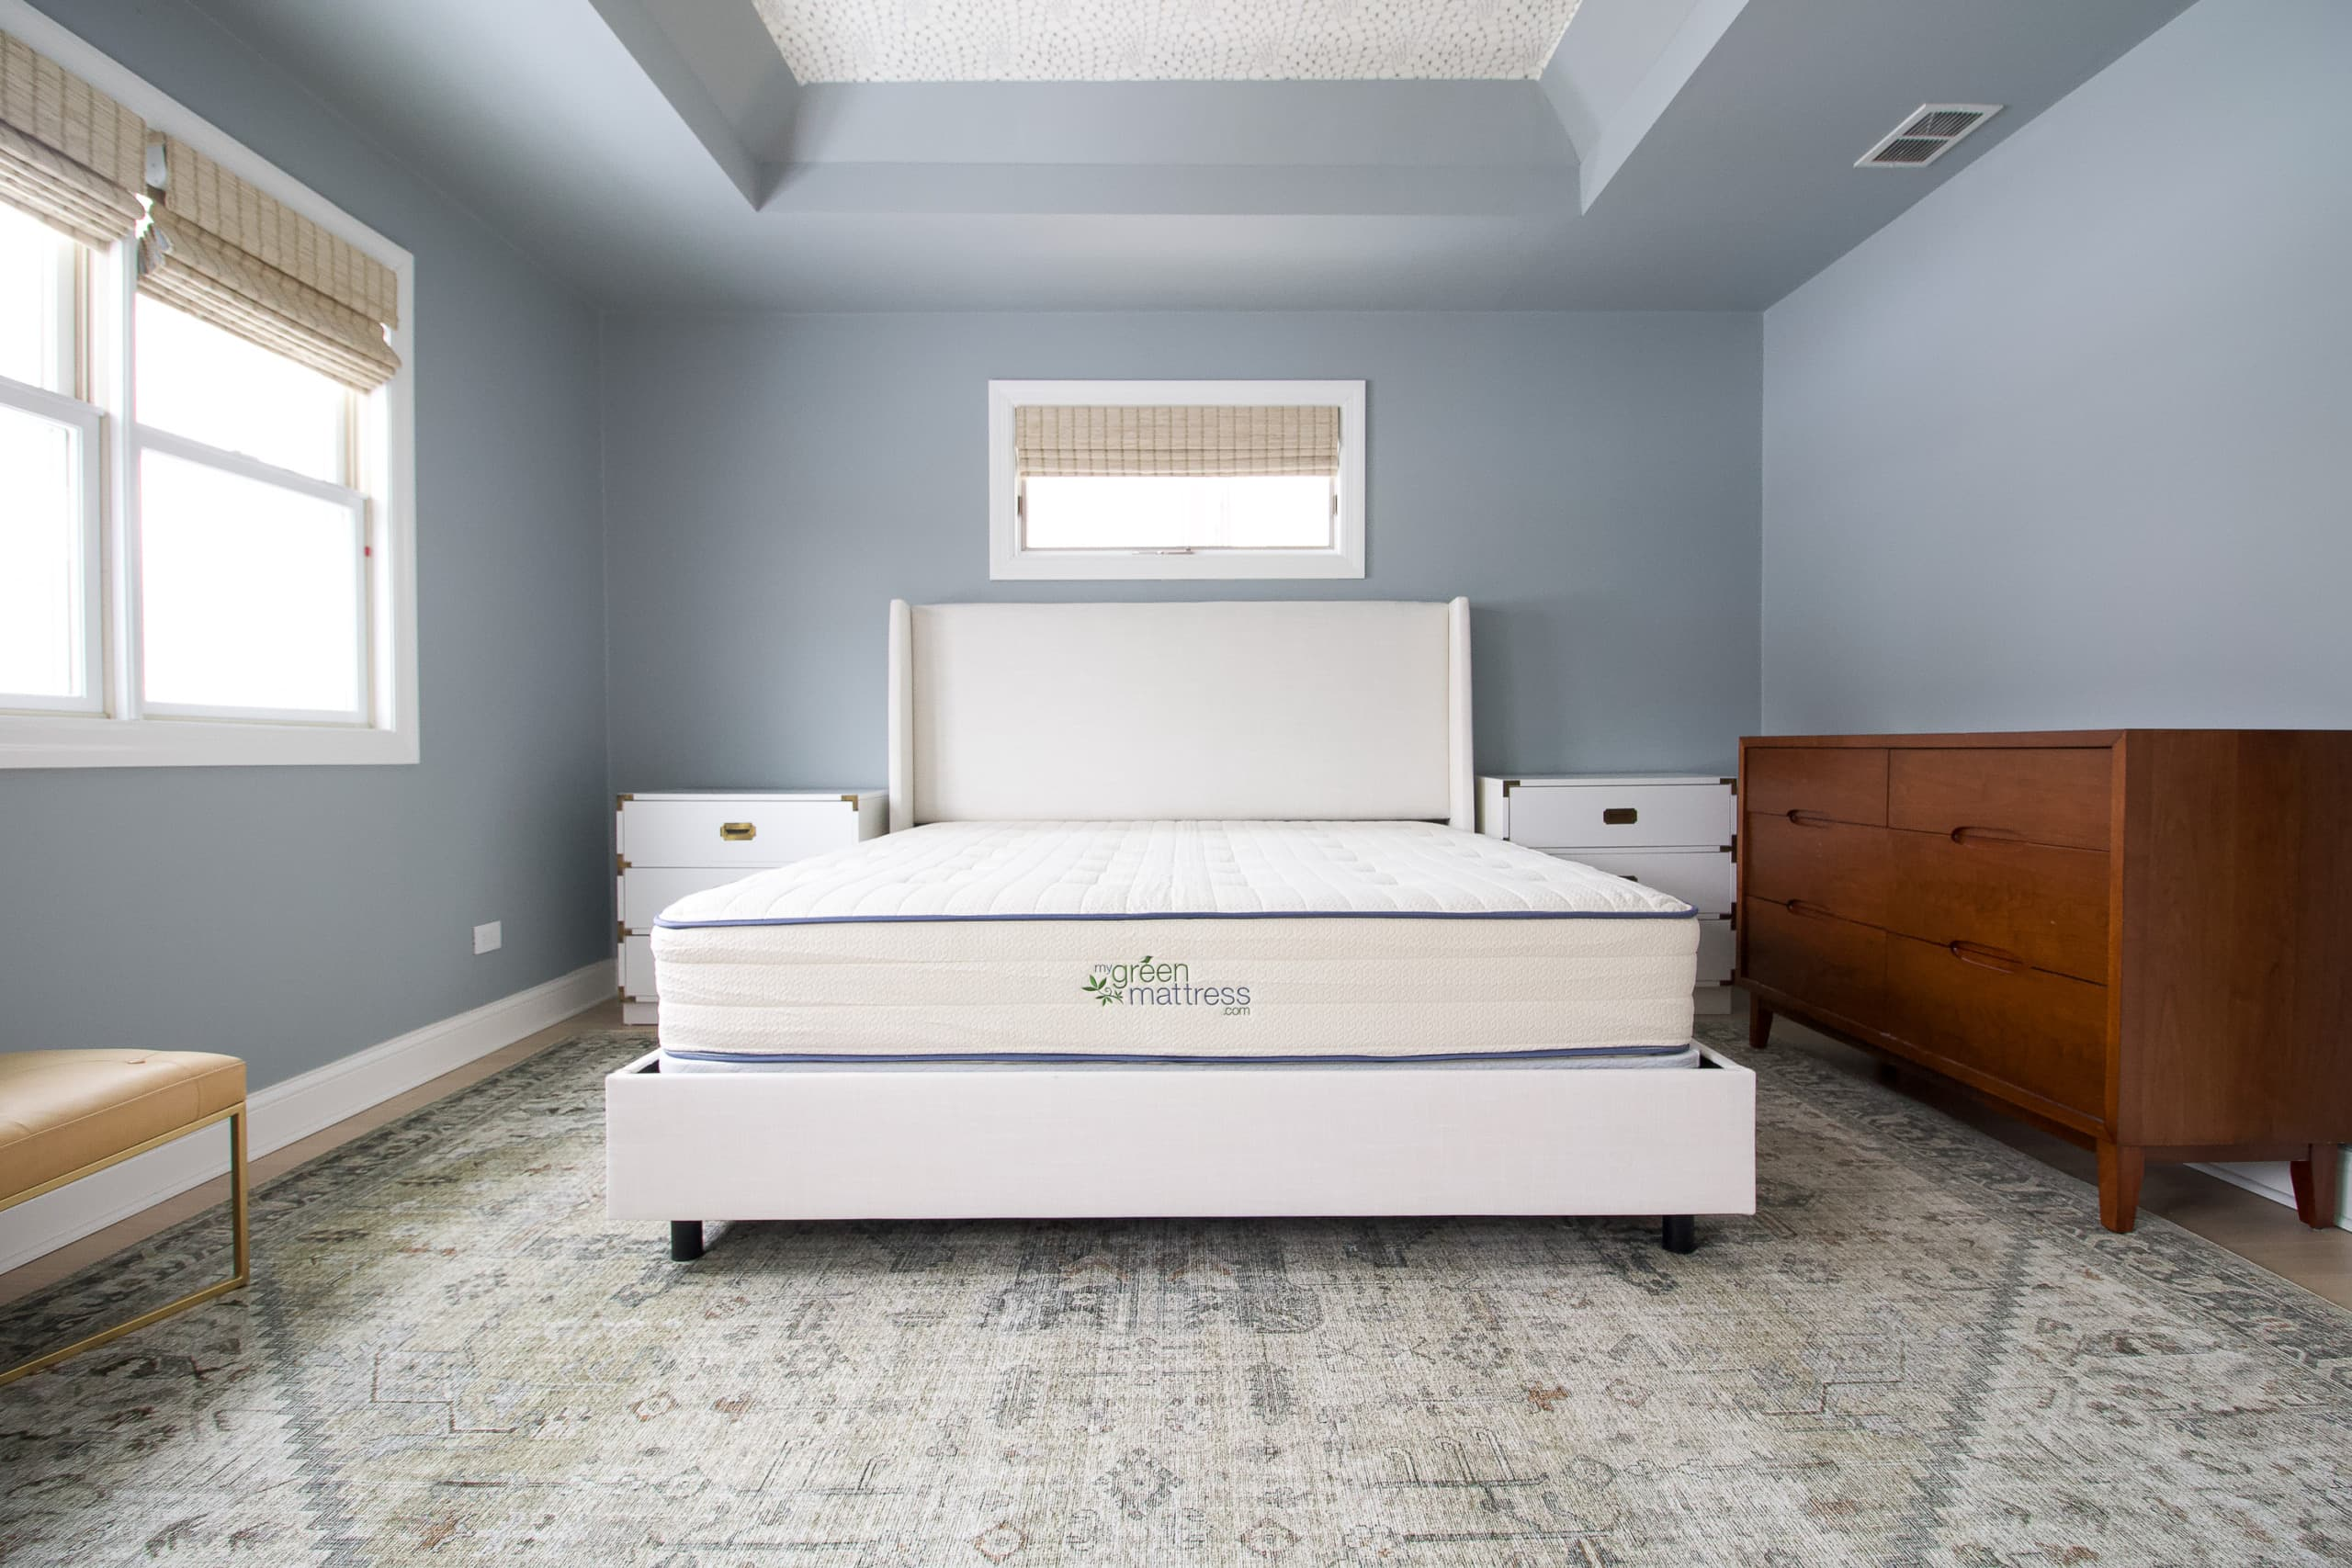 Our new king-sized bed